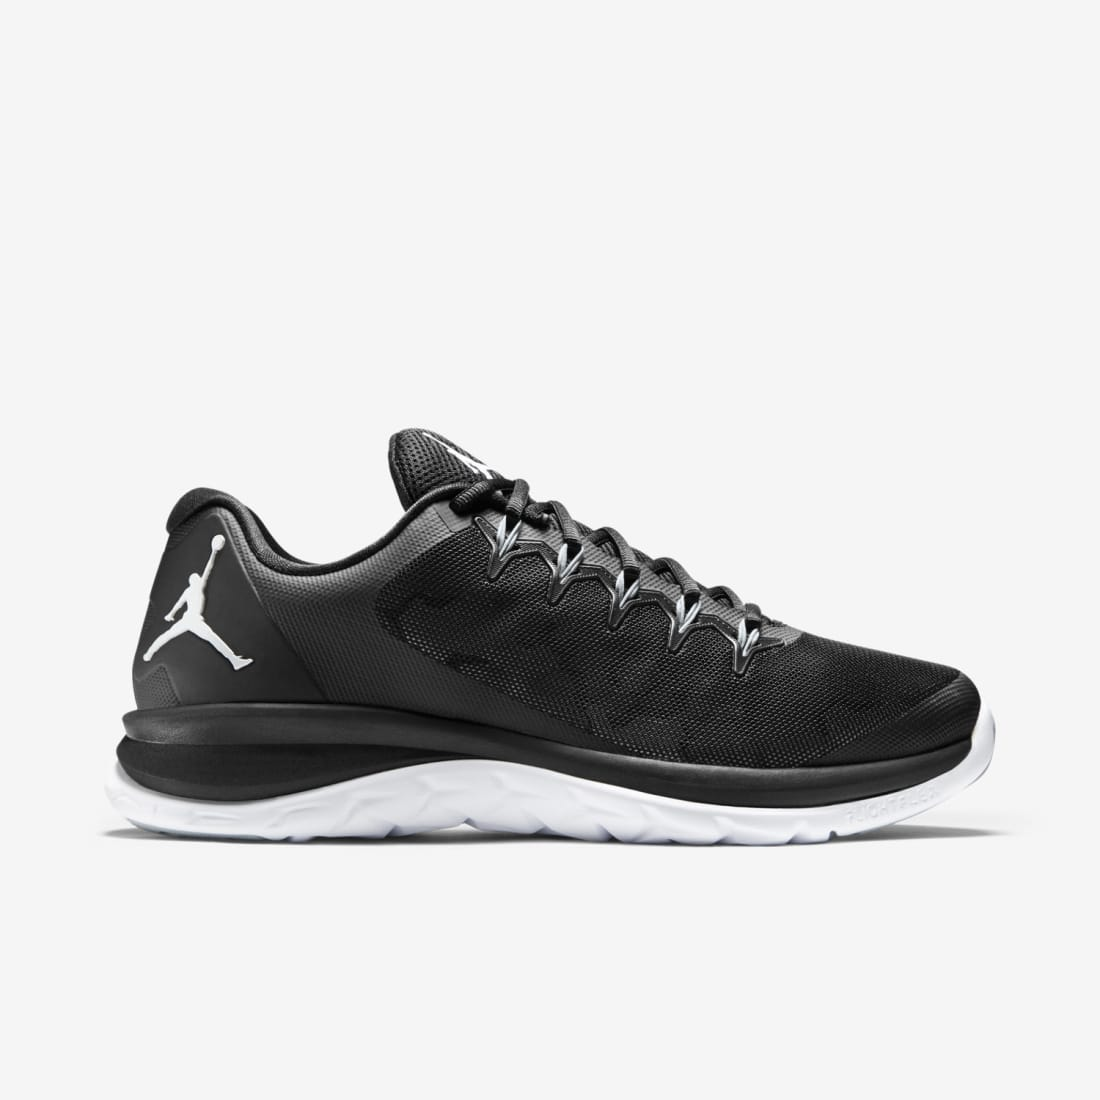 Cerdo cristiandad lantano  Jordan Flight Runner 2 | Jordan | Sole Collector